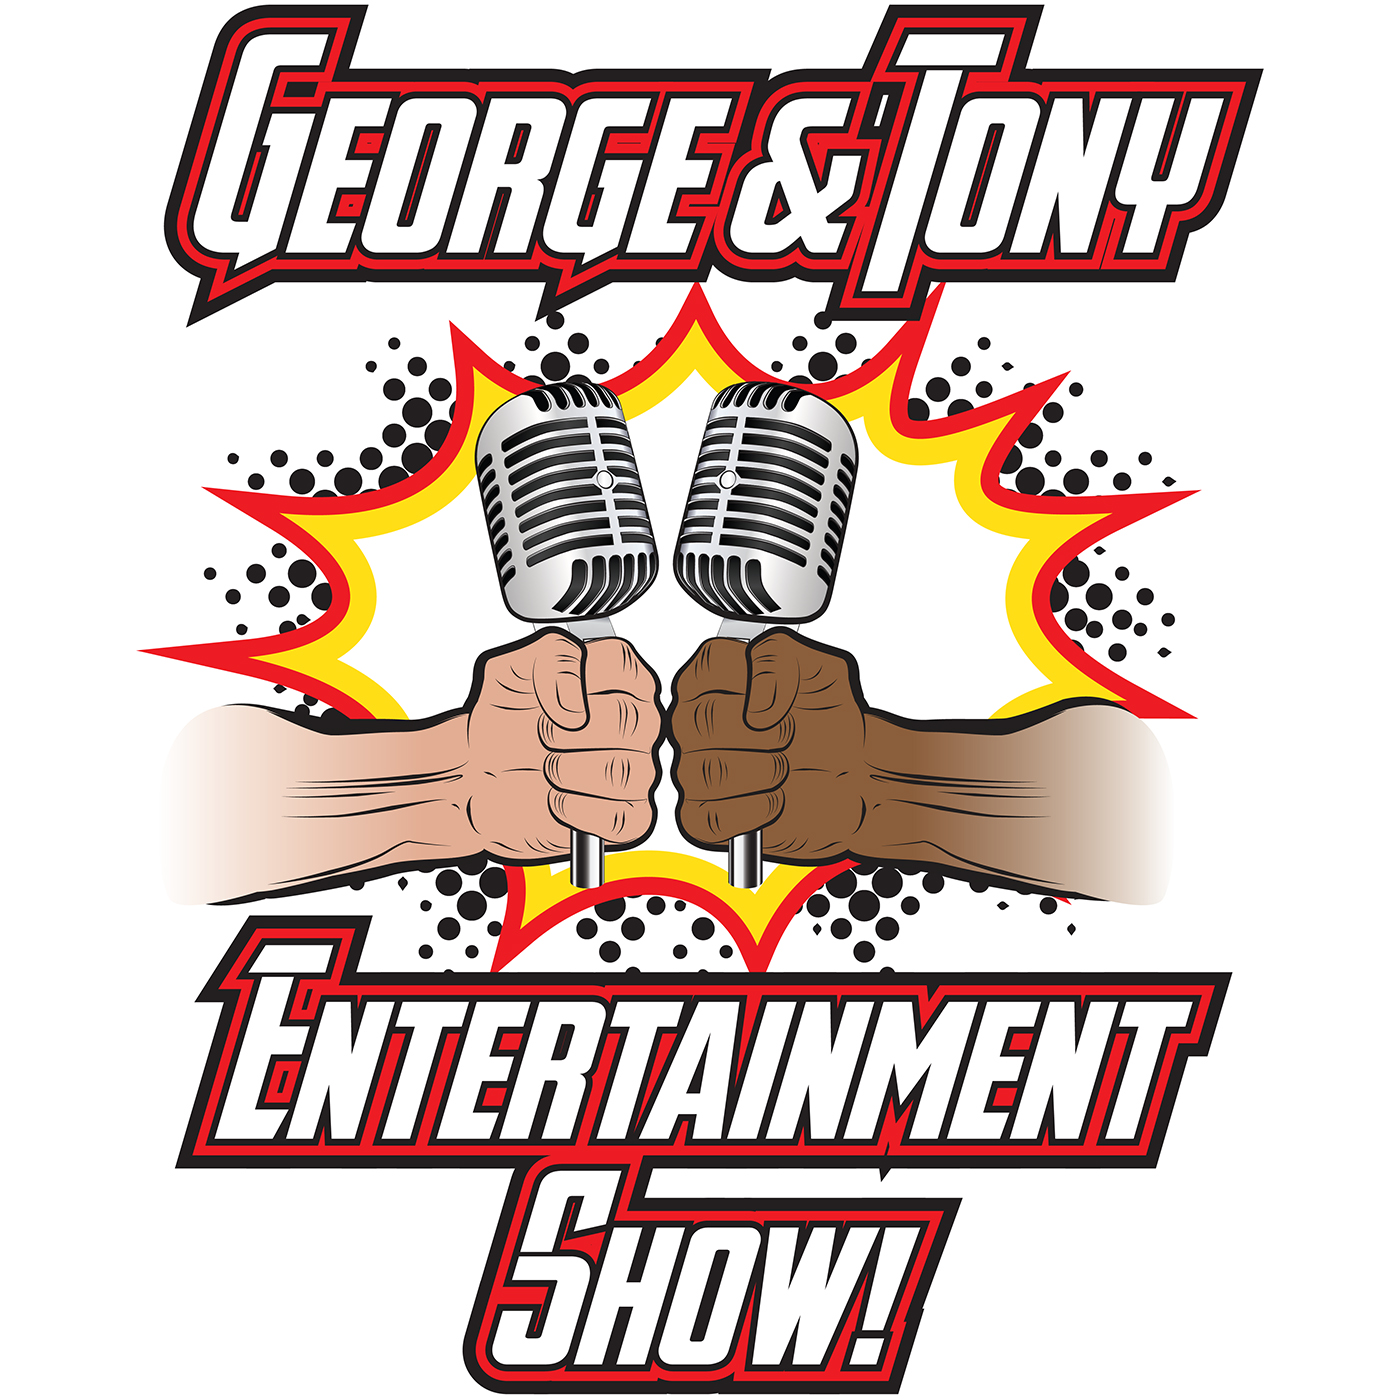 George and Tony Entertainment Show #18